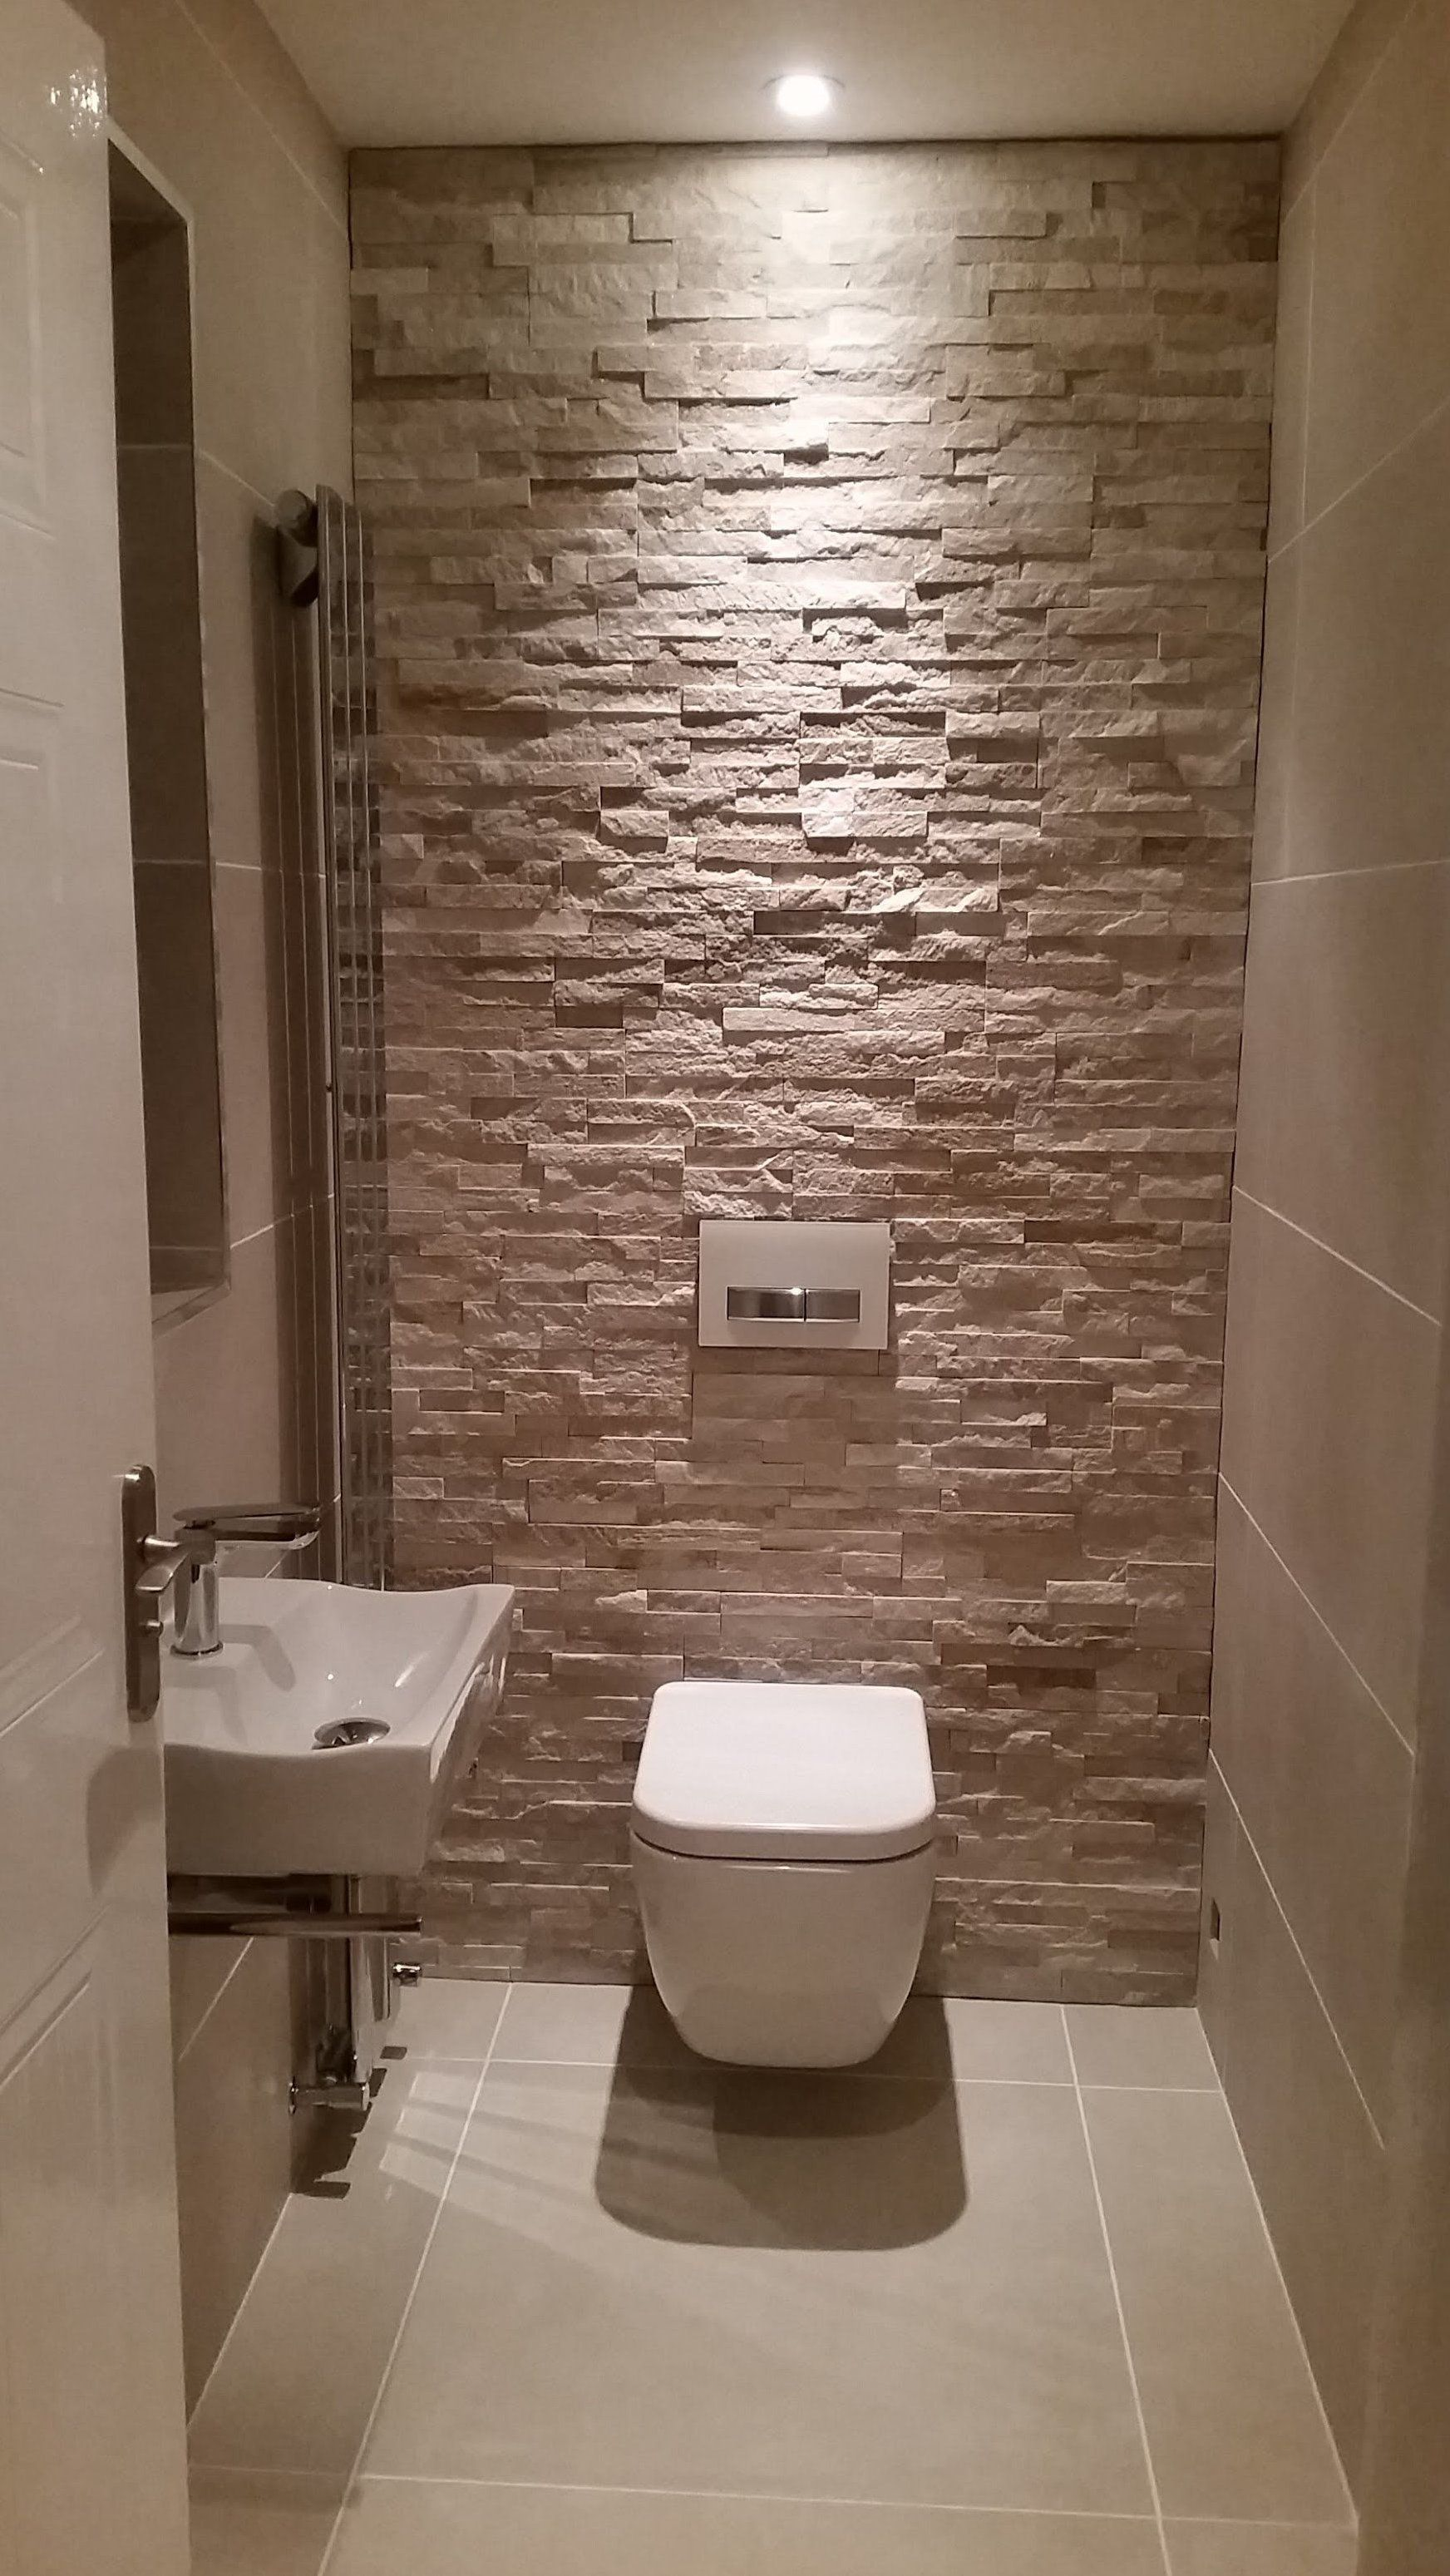 Cloakroom Wc Project Bathroomideas In 2020 Downstairs Toilet Small Toilet Room Downstairs Cloakroom